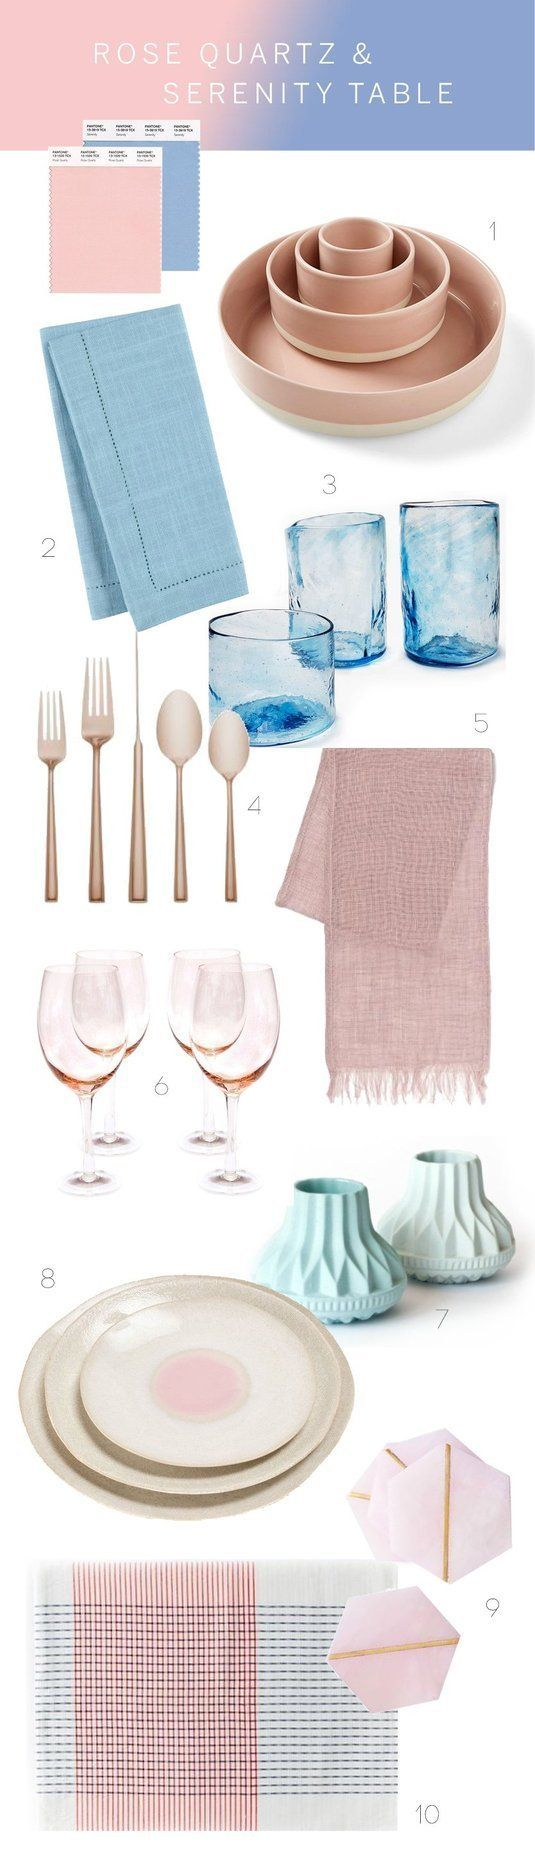 setting a table in pantone 39 s colors of the year rose quartz serenity therapy white shaker. Black Bedroom Furniture Sets. Home Design Ideas